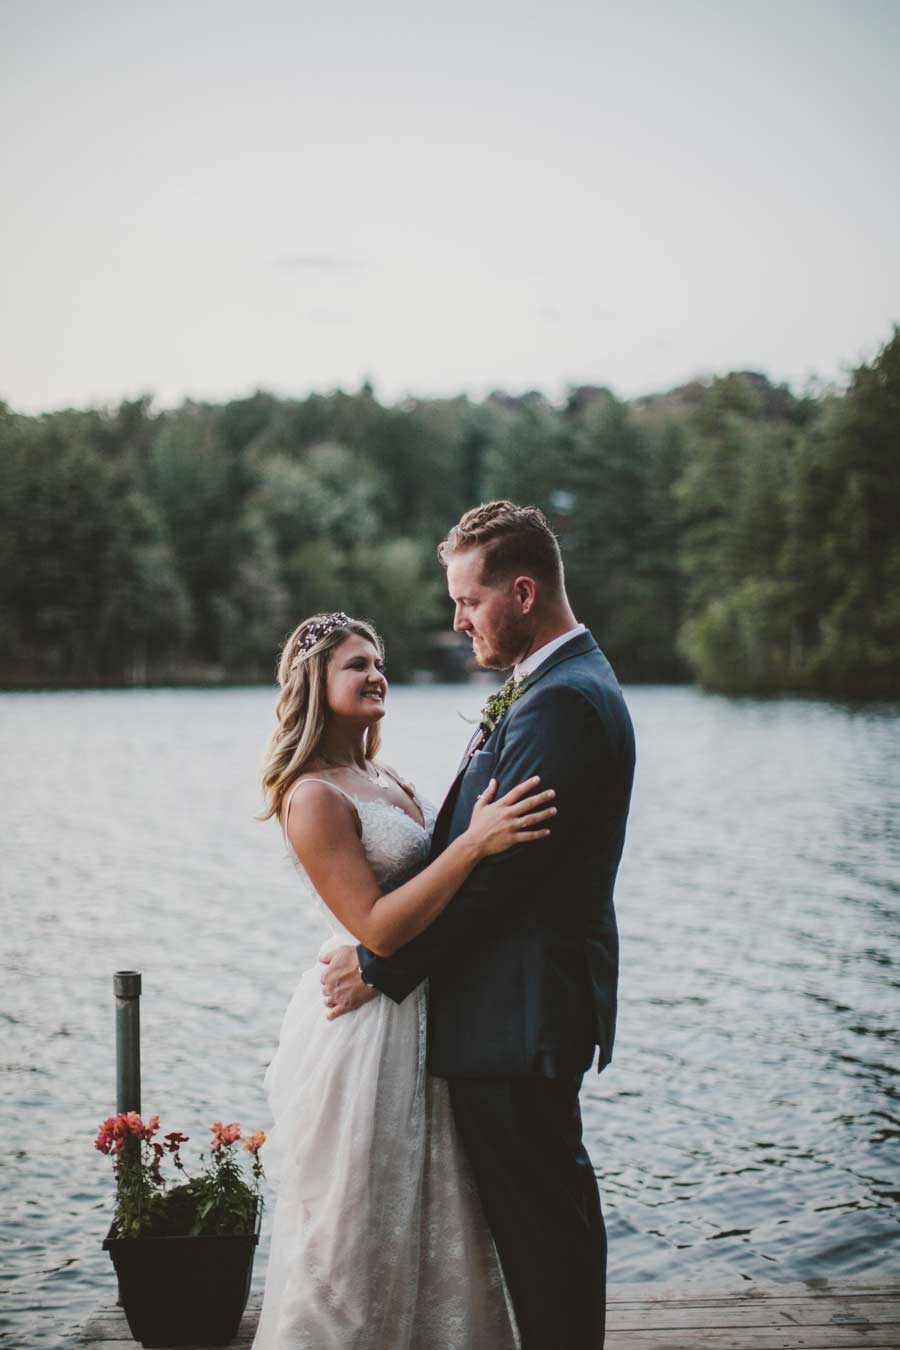 Lake Wedding Venue